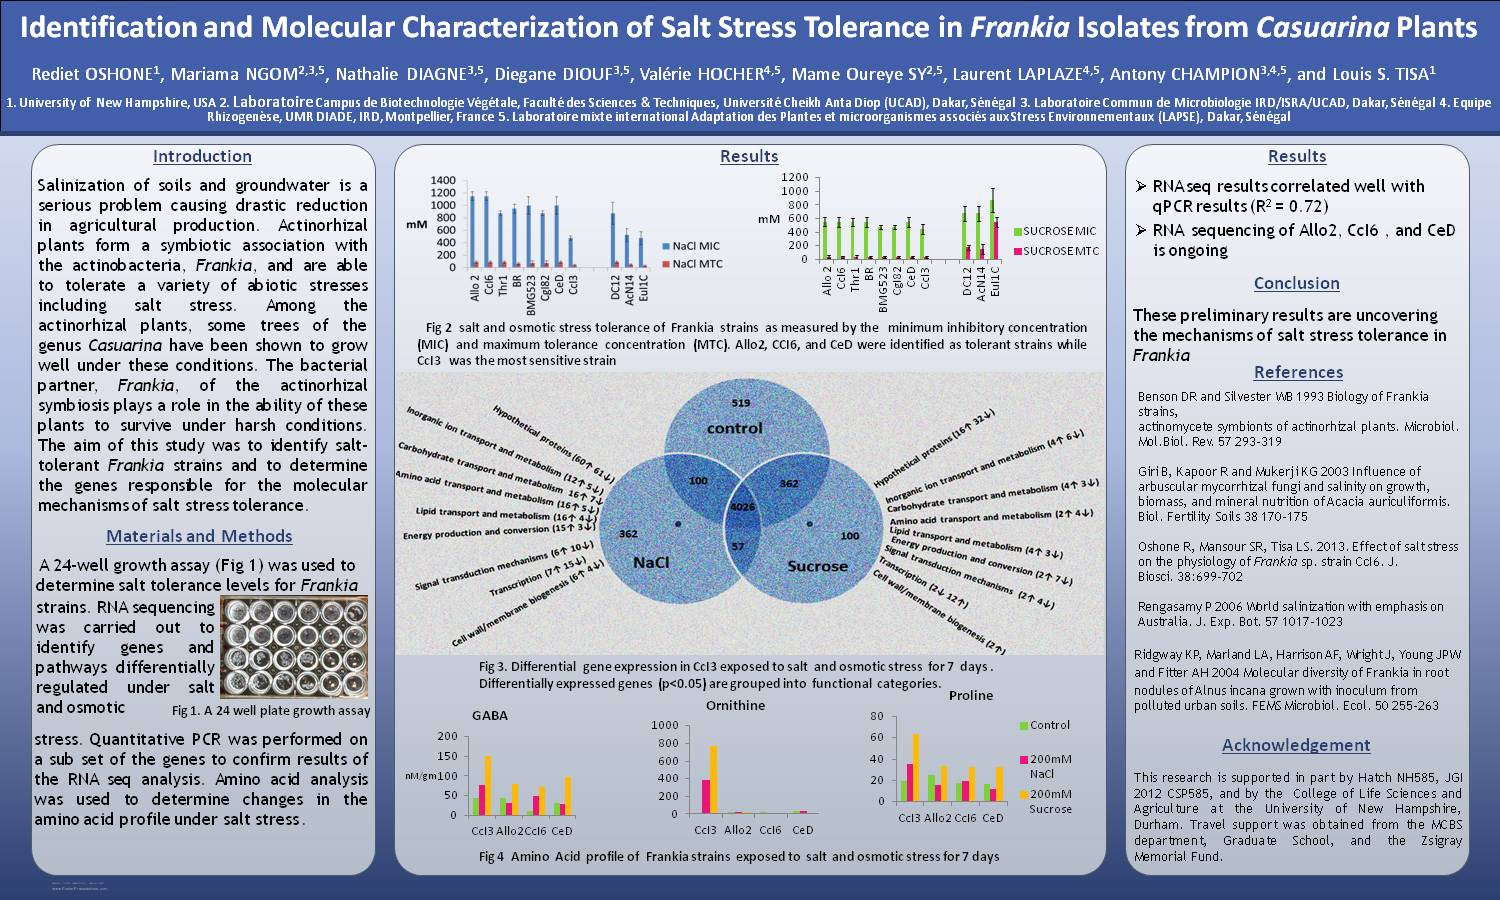 Identification And Molecular Characterization Of Salt Stress Tolerance In Frankia Isolates From Casuarina Plants by rts42